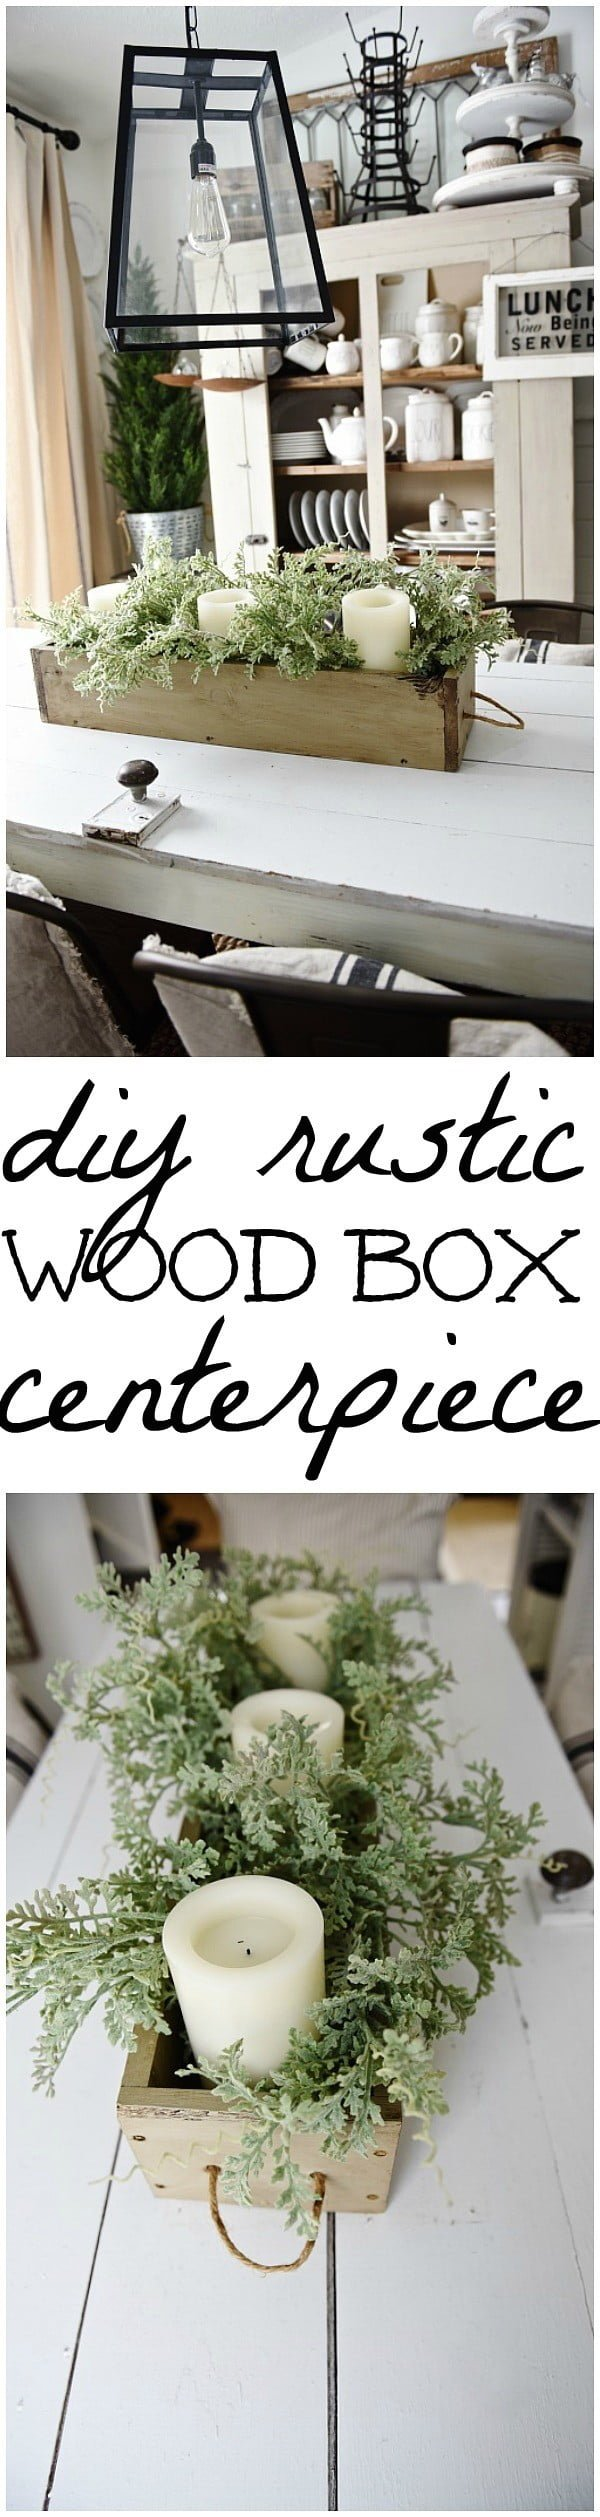 How to make a DIY rustic wood box centerpiece